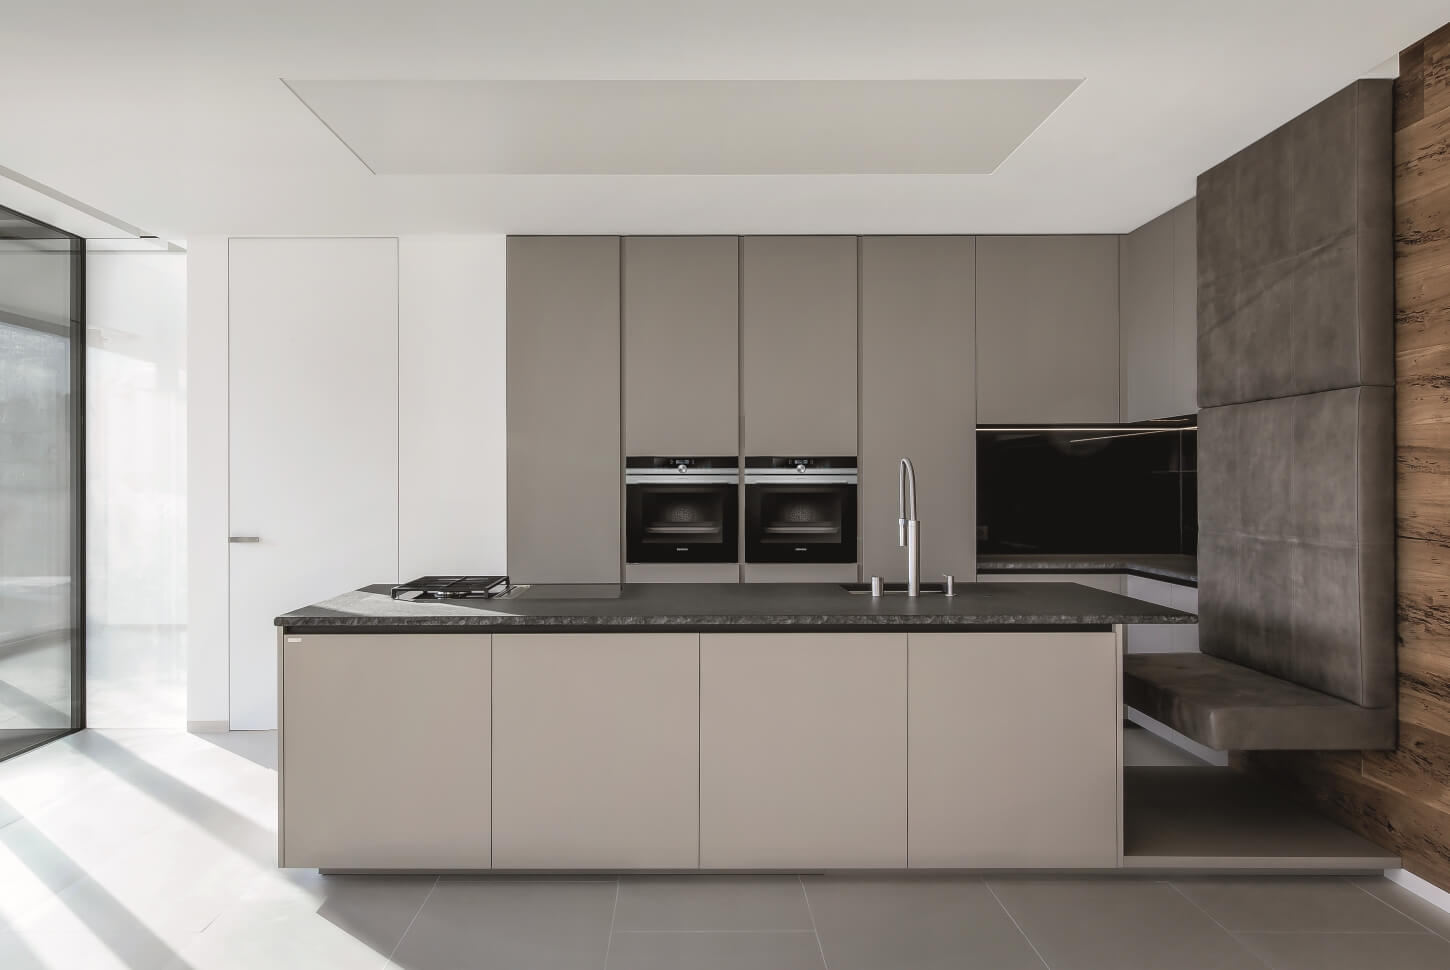 02PI-AP-REF-2016-kitchen-private-linz-AT-02-1450.jpg